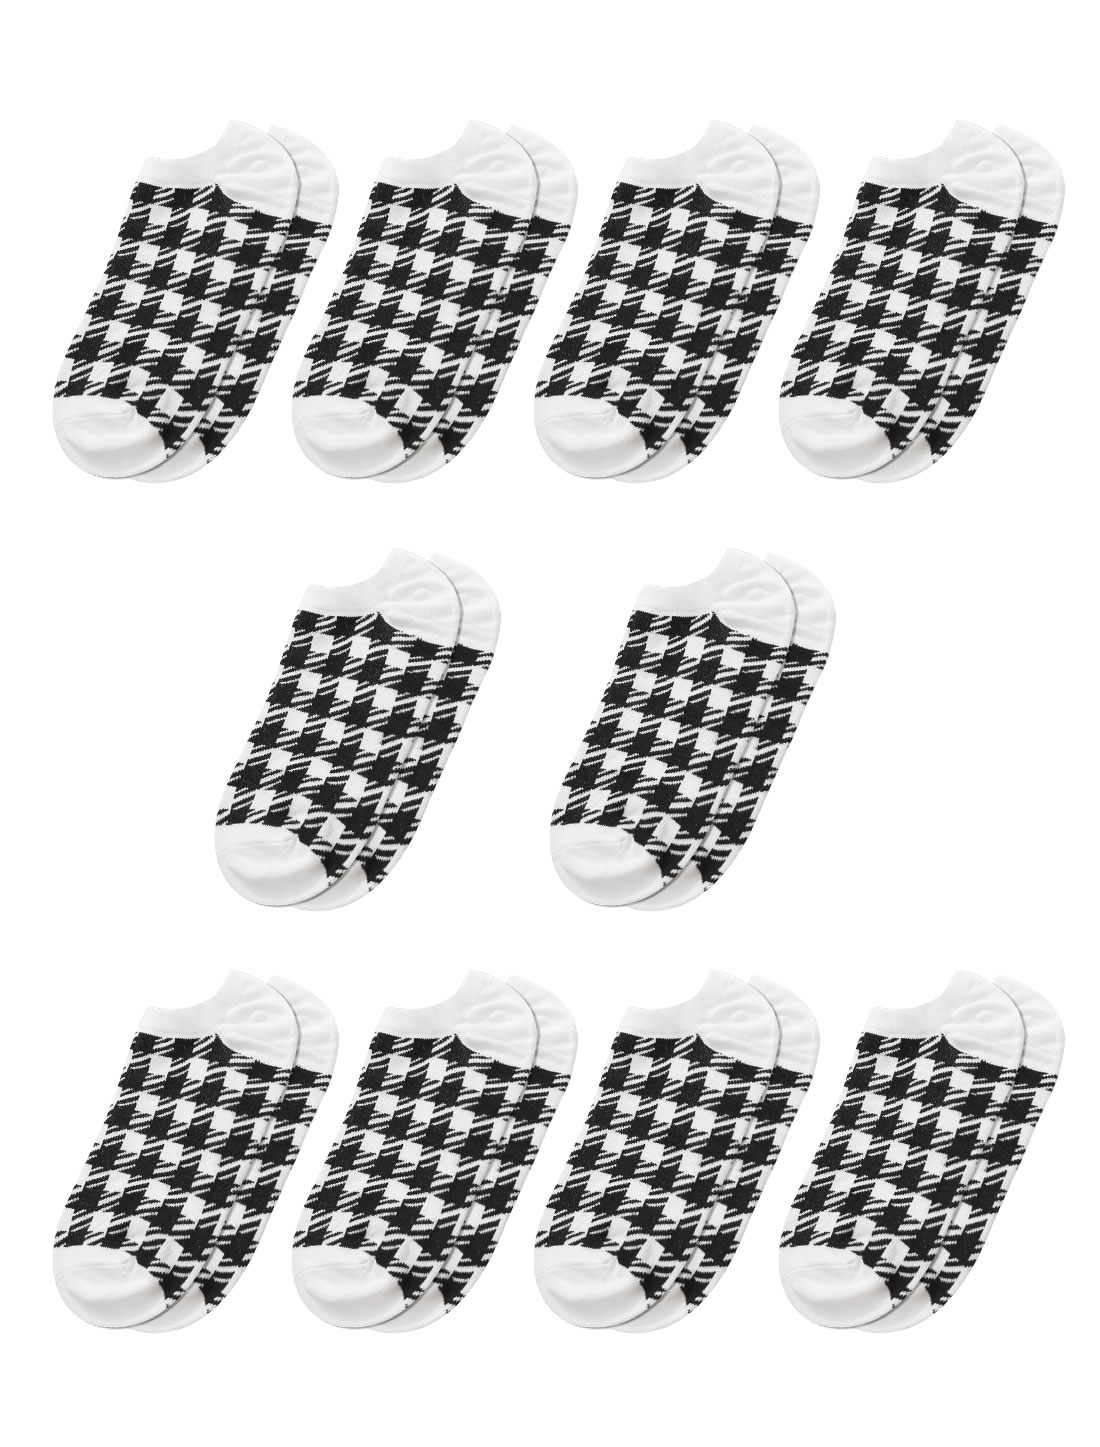 Women Low Cut Plaids Ankle Length Short Socks 10 Pairs Black 9-11